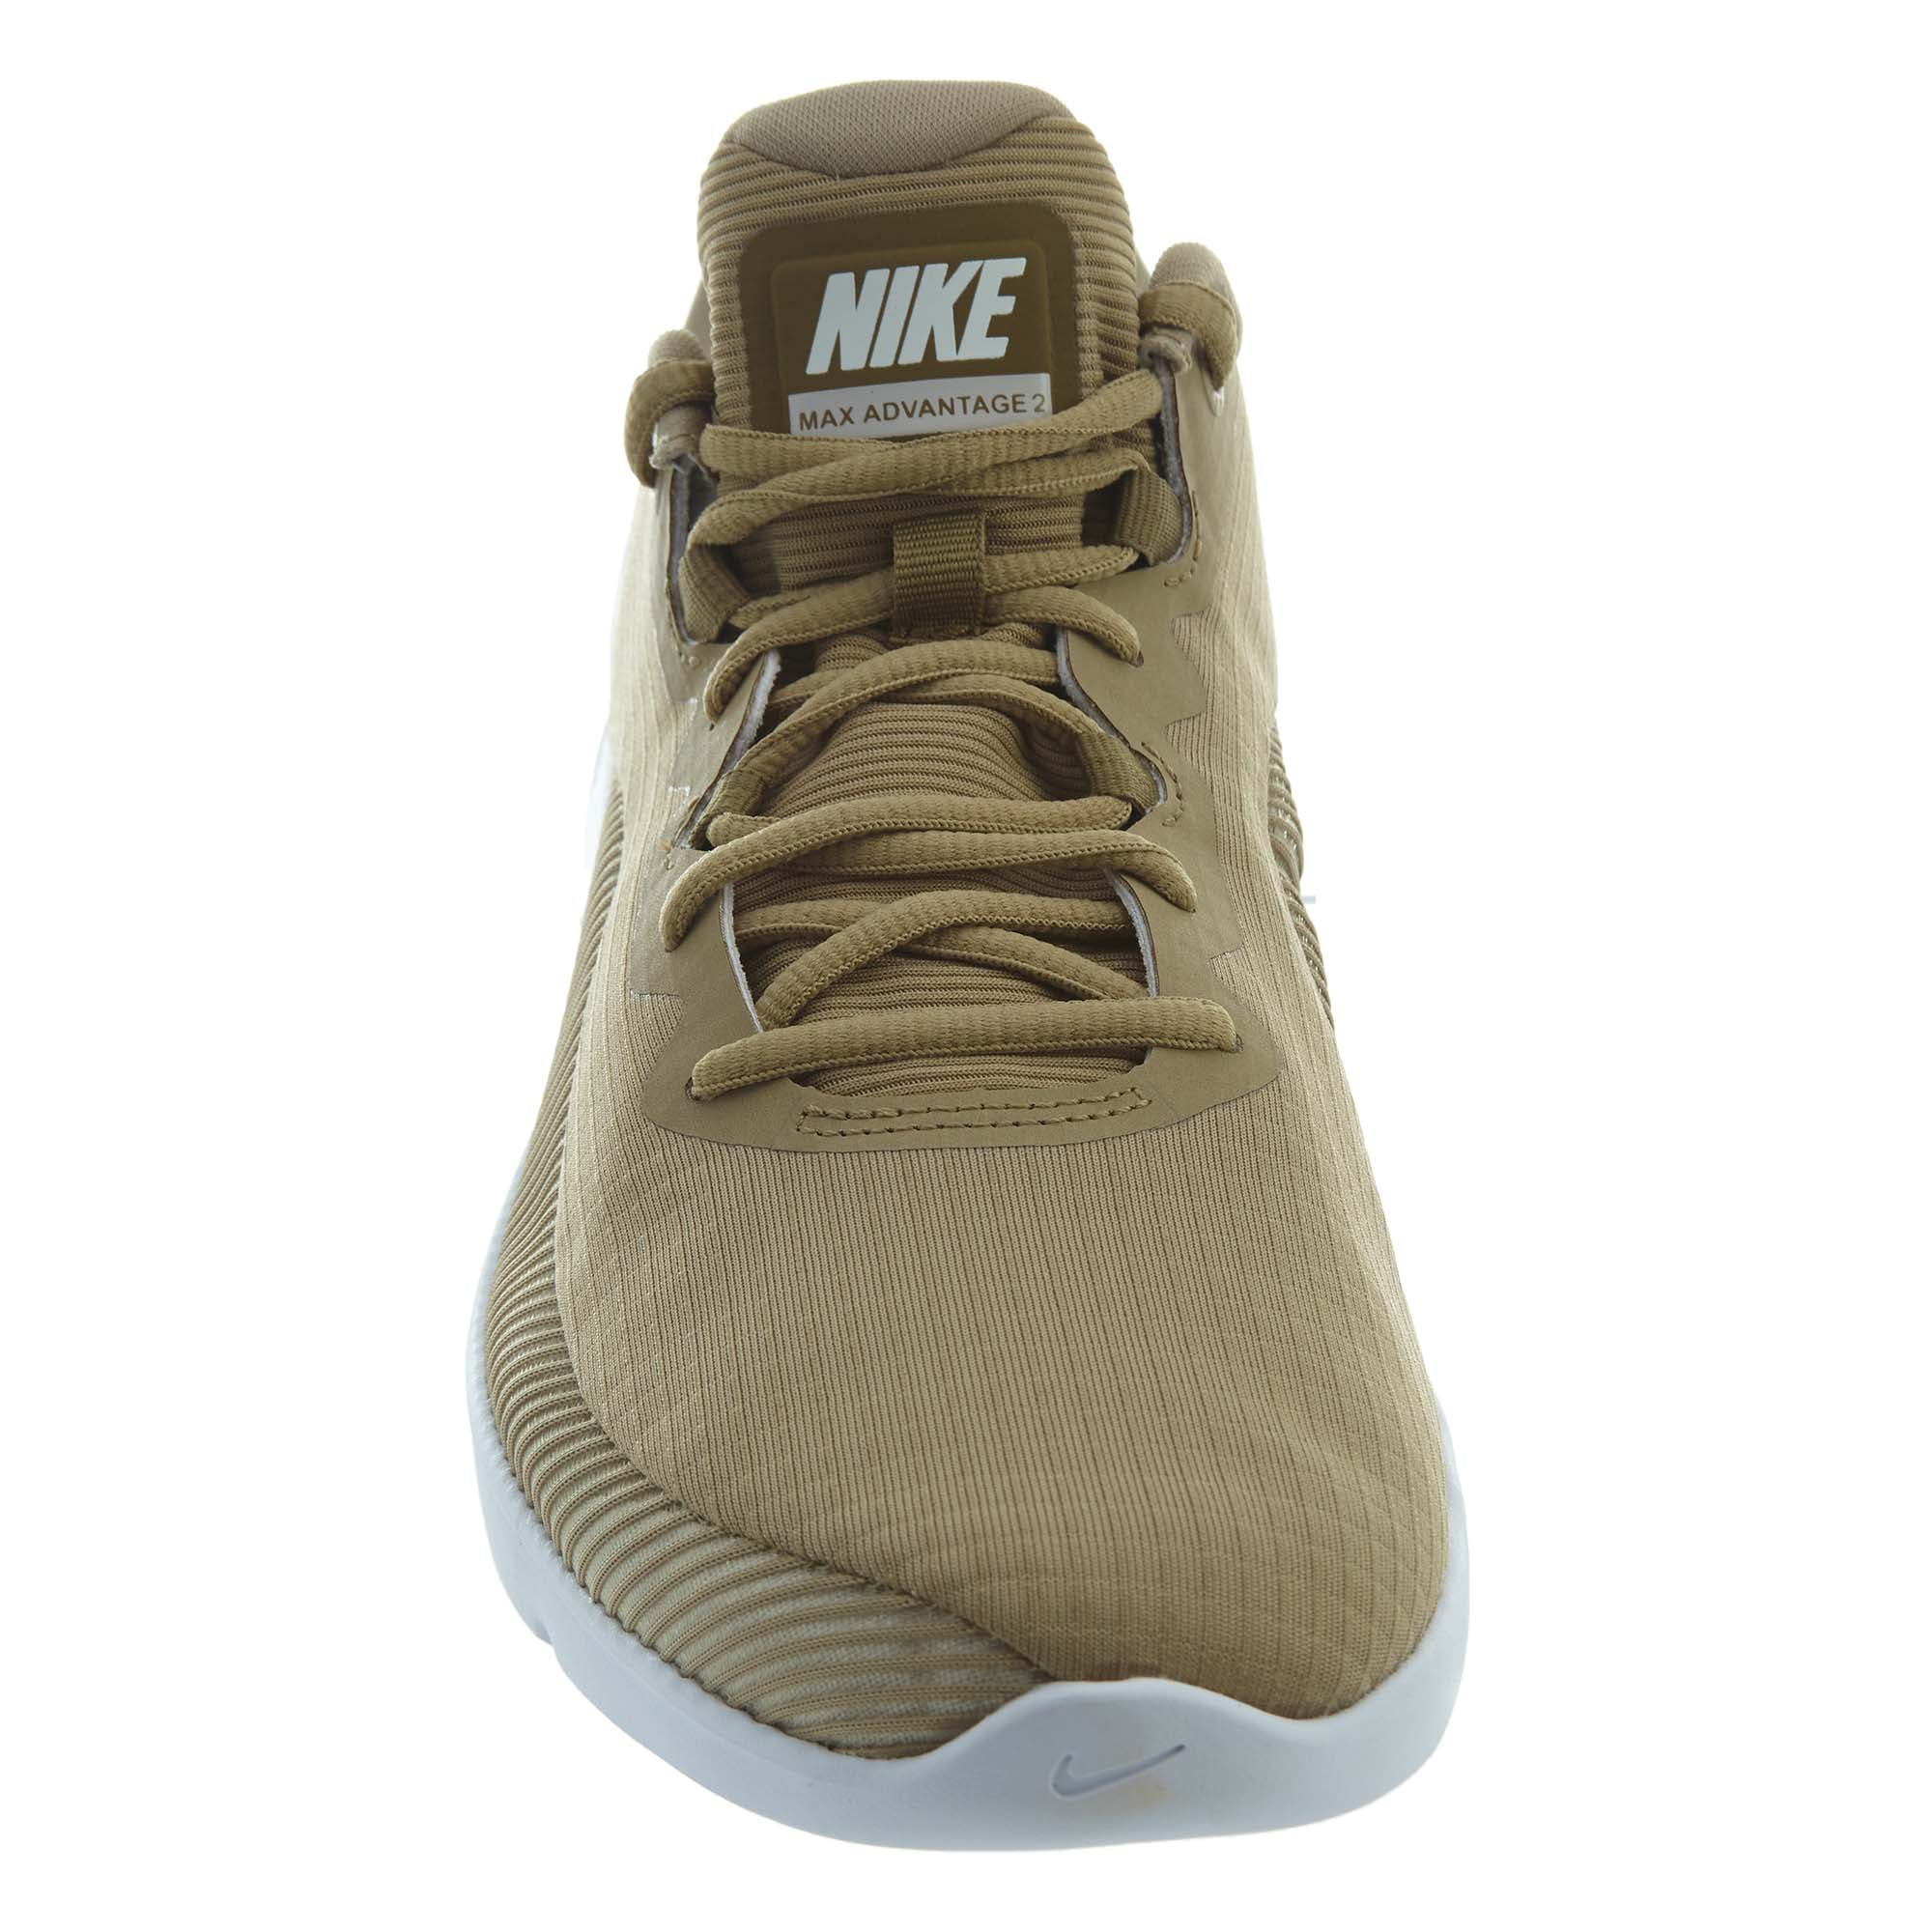 dee6a0231aae6f Nike Air Max Advantage 2 Mens Style   Aa7396-200 - 734 Kicks